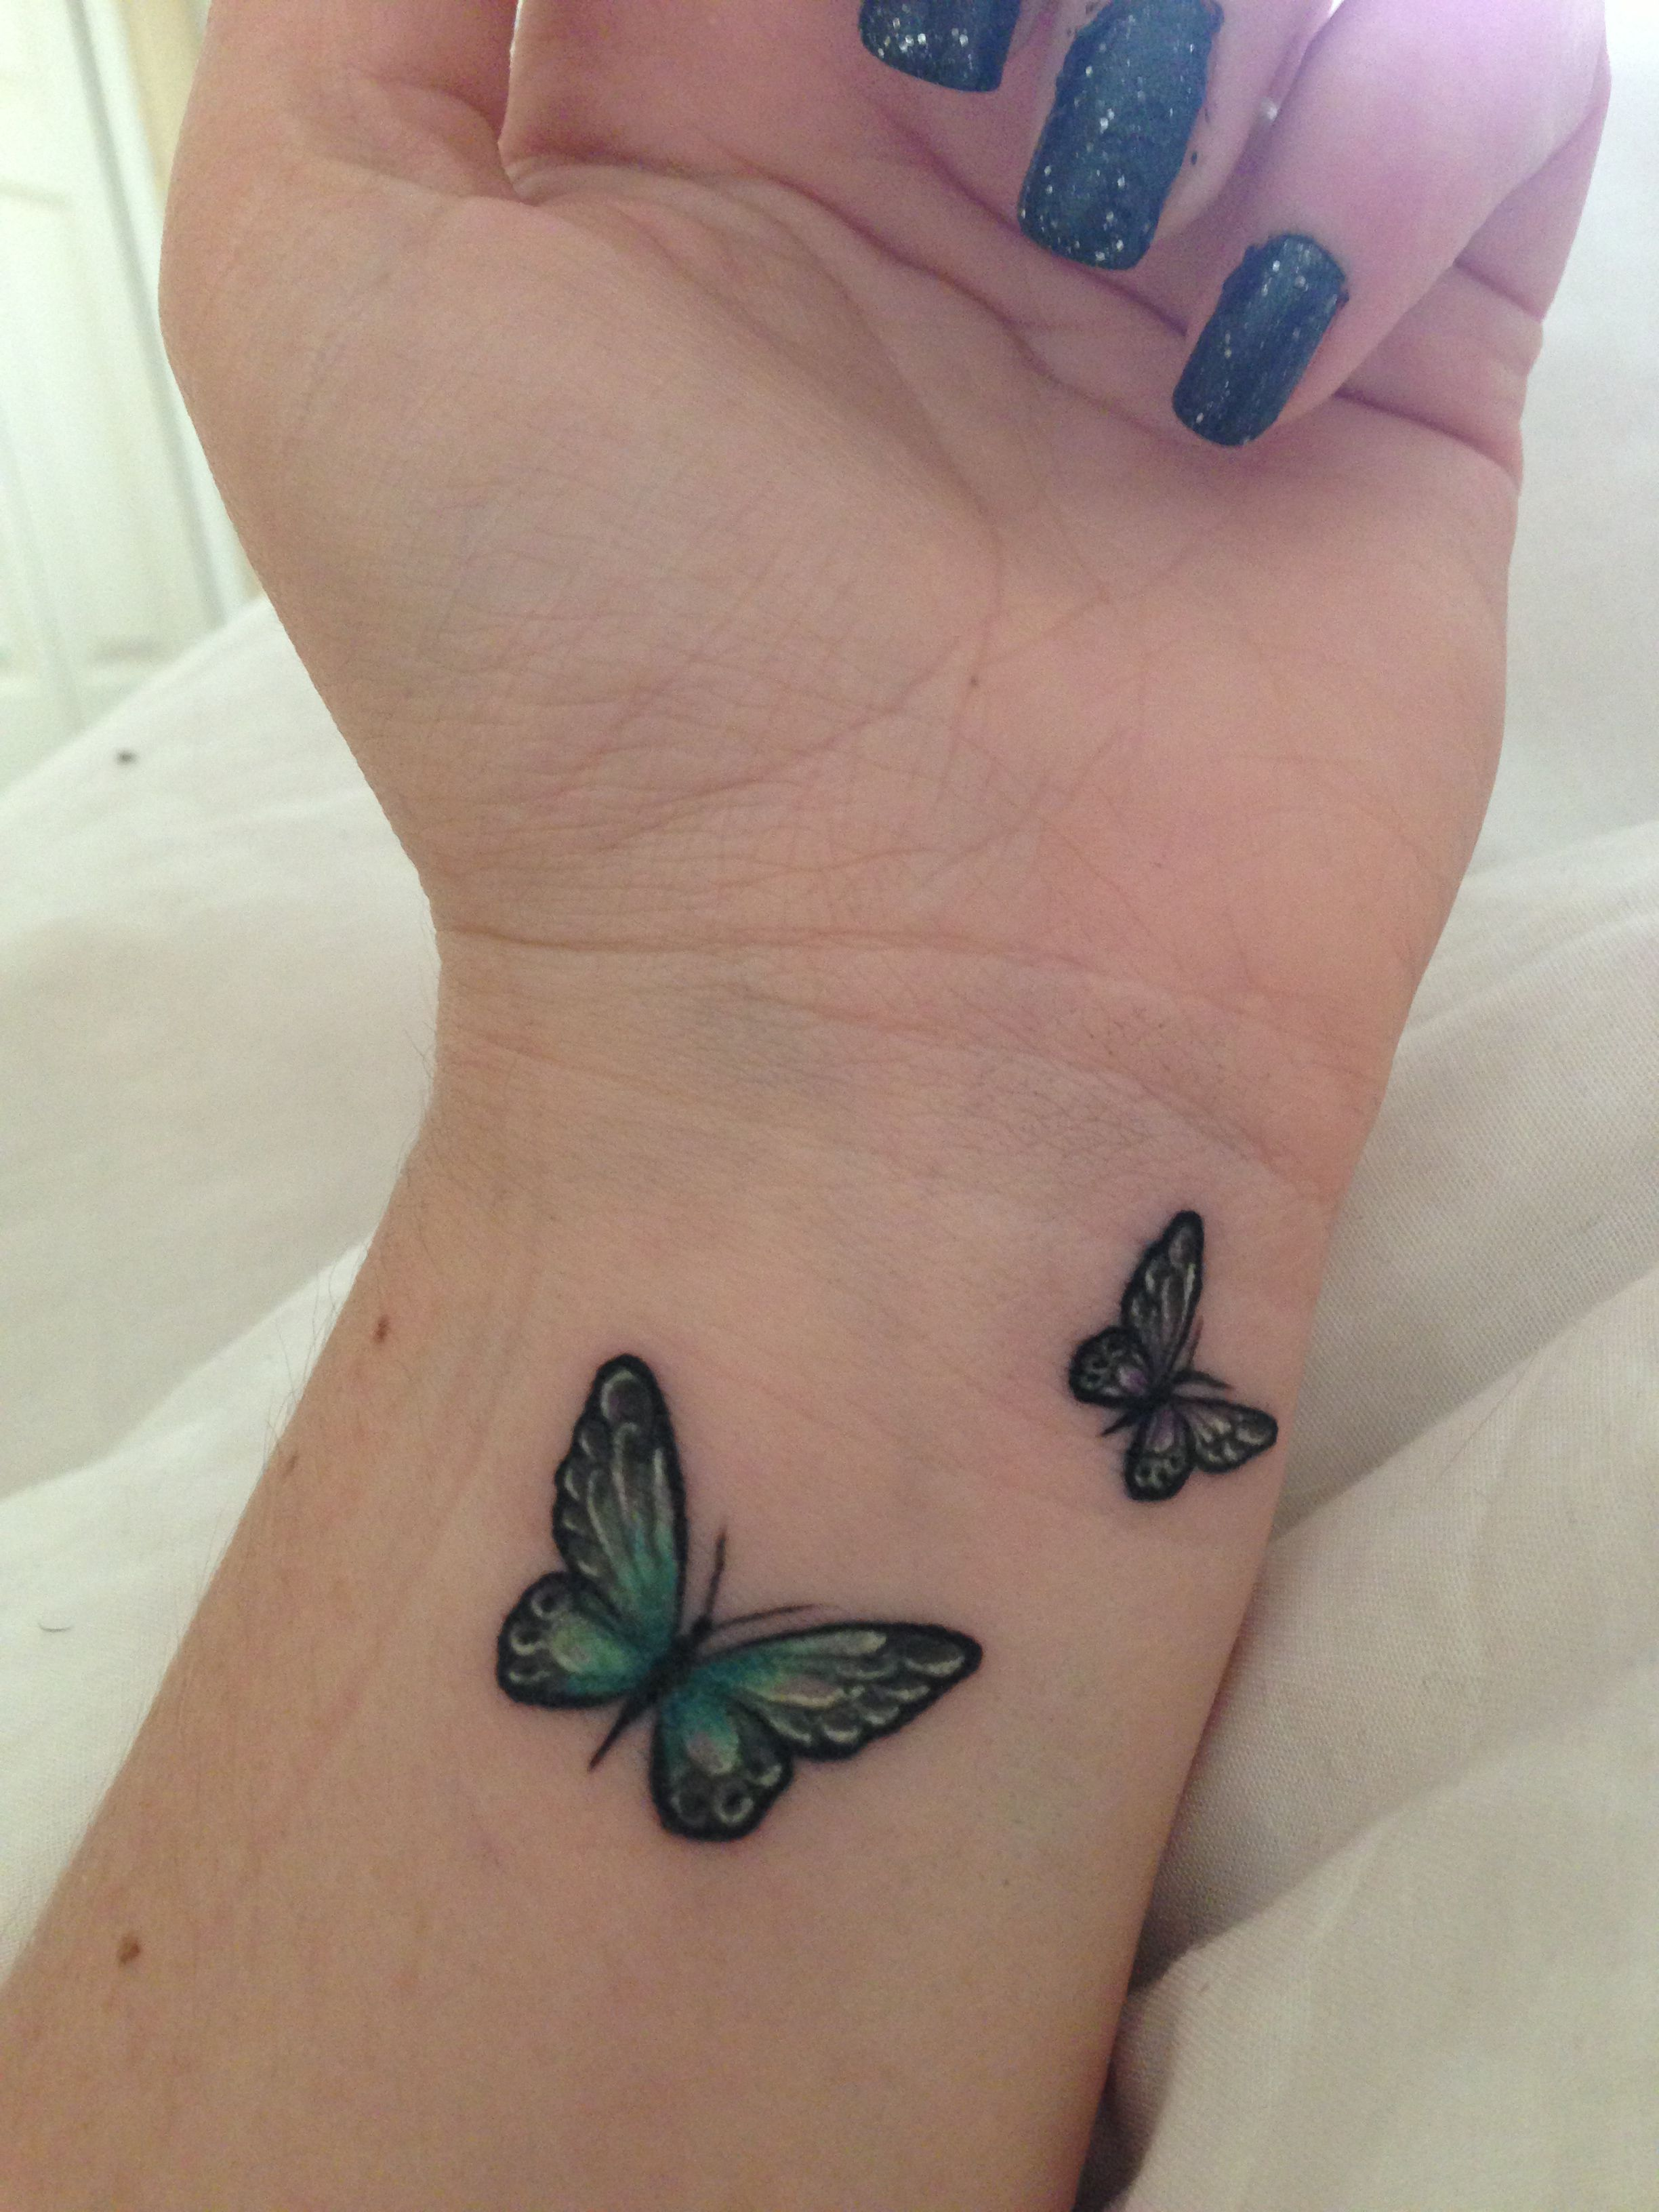 25 Small Tribal Tattoos On Wrist Butterfly wrist tattoo